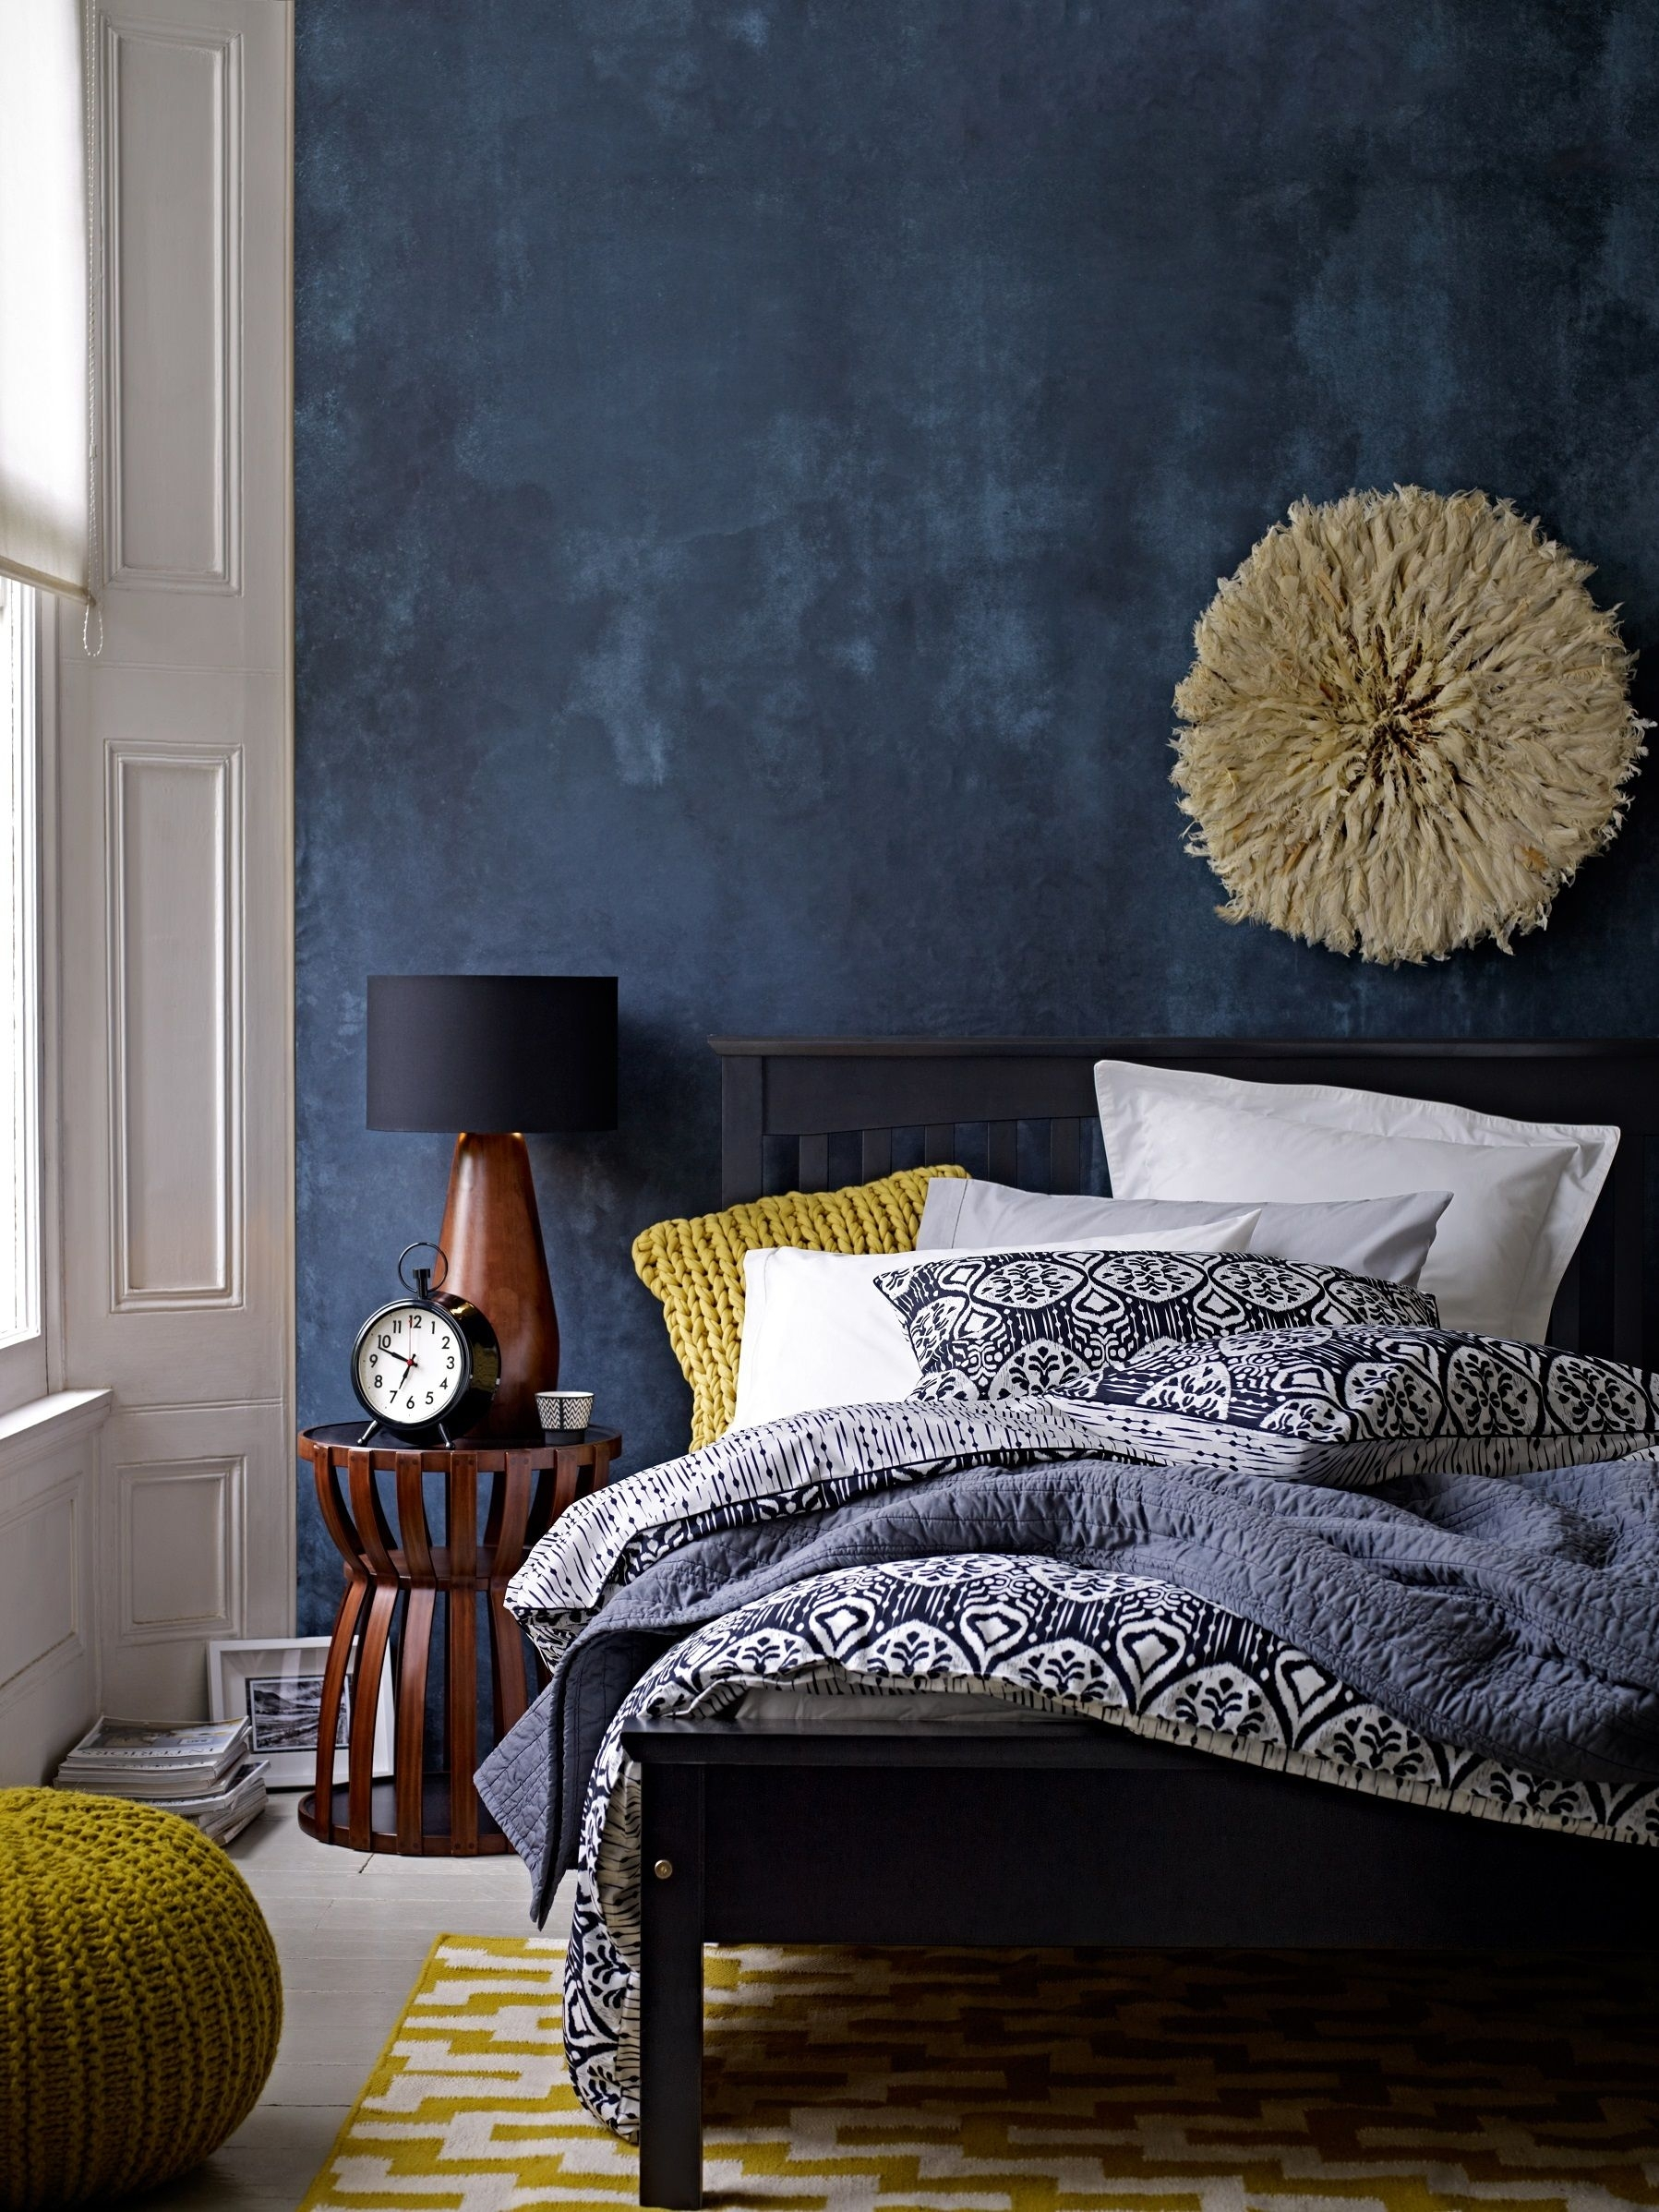 Deep Blue Accent Wall In Modern Eclectic Bedroom – Gorgeous Use Of With Regard To 2017 Blue Wall Accents (View 14 of 15)